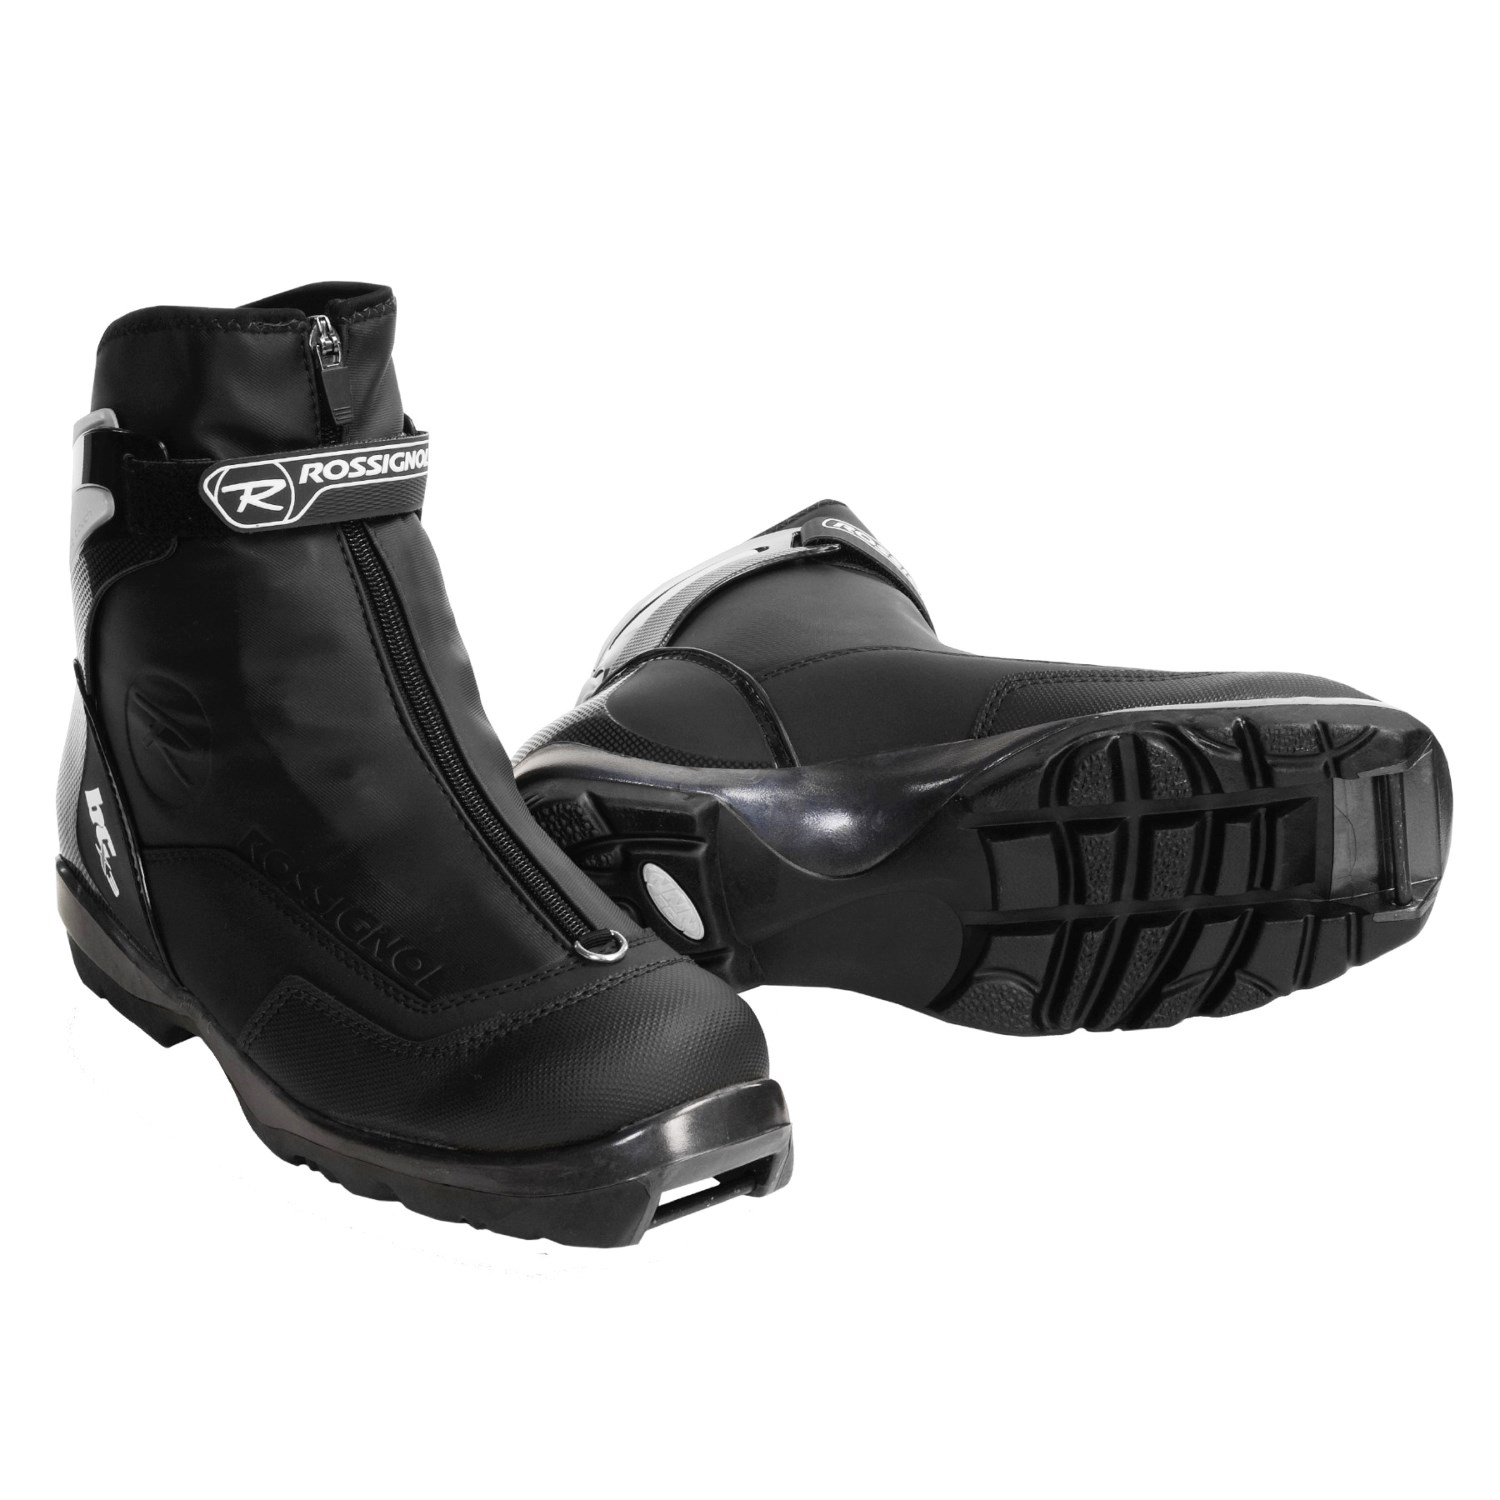 Rossignol BC X3 Nordic Backcountry Ski Boots (For Men